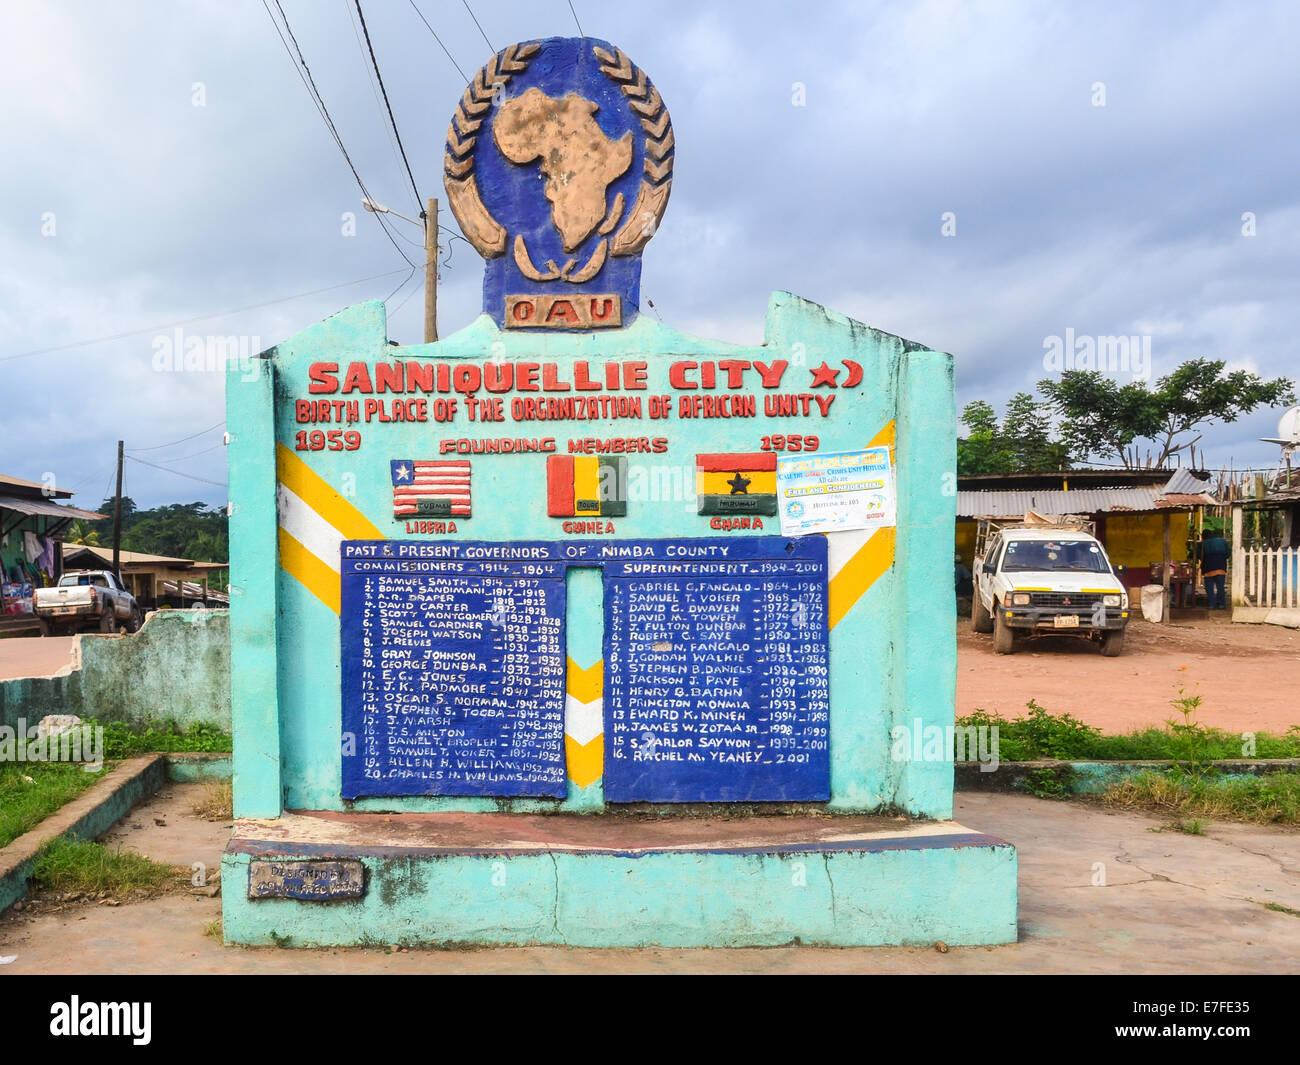 Sanniquellie city, Nimba County, Liberia, memorial to the birth of the OAU, now known at the AU (African Union) - Stock Image